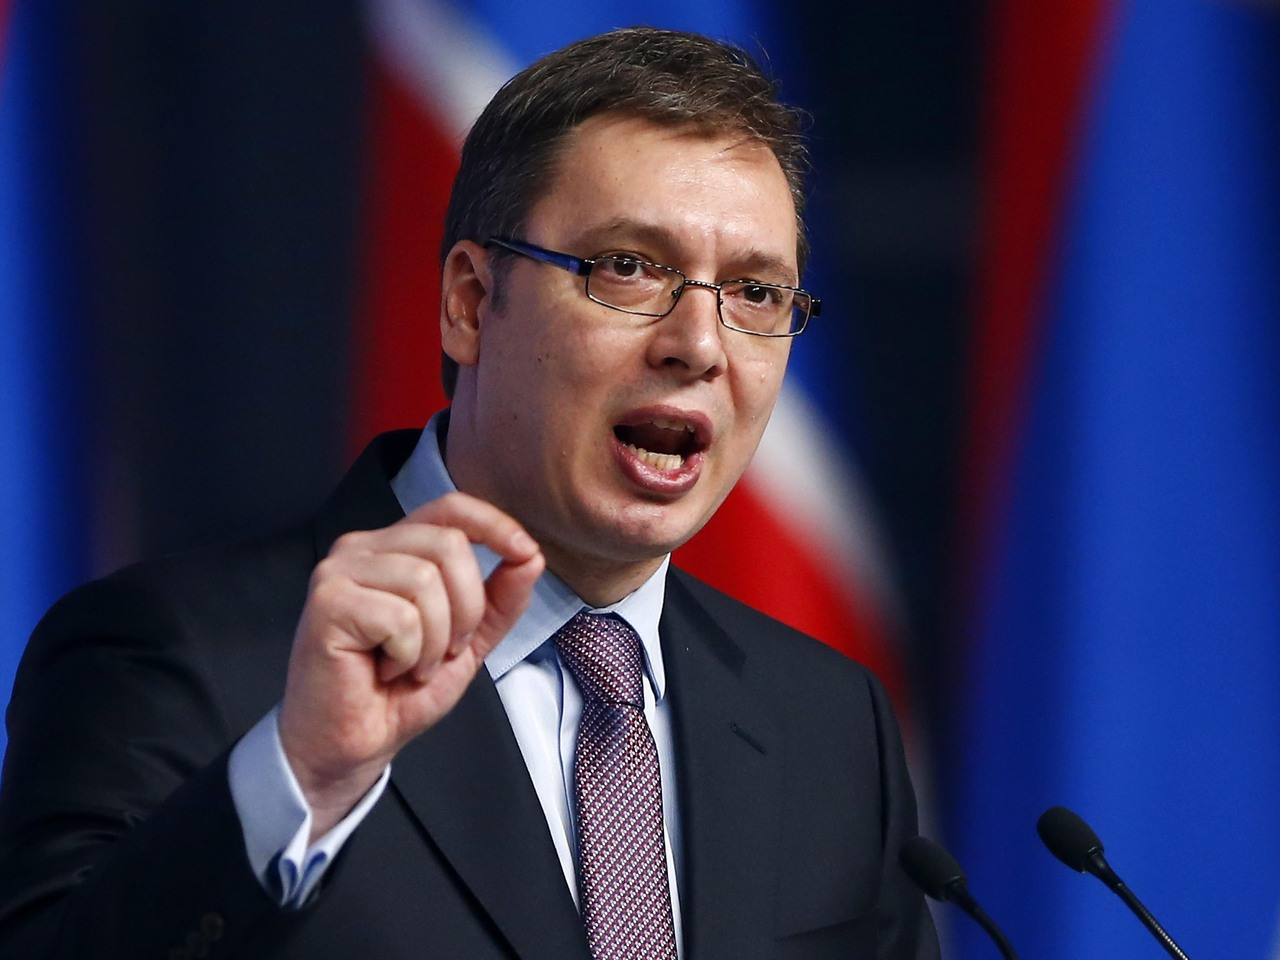 Kosovo's army cannot cross in the north of Mitrovica, Vucic says